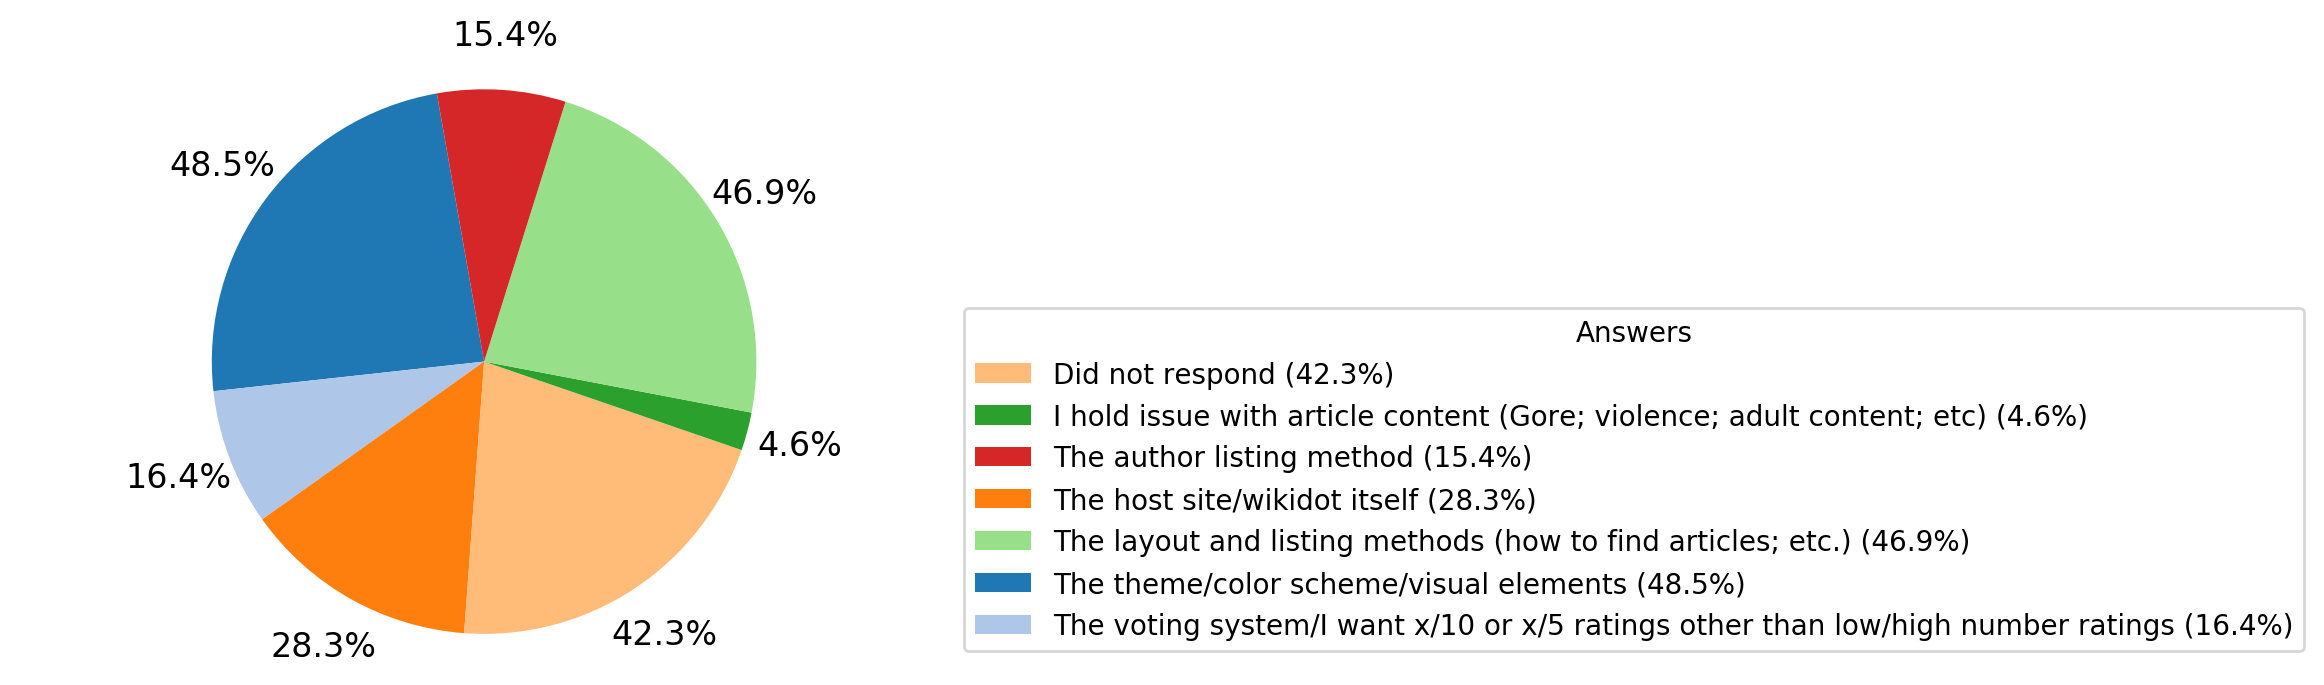 If_you_think_something%28s%29_about_the_wiki_can_be_improved%2C_what_category_does_it_fall_under%3F.png